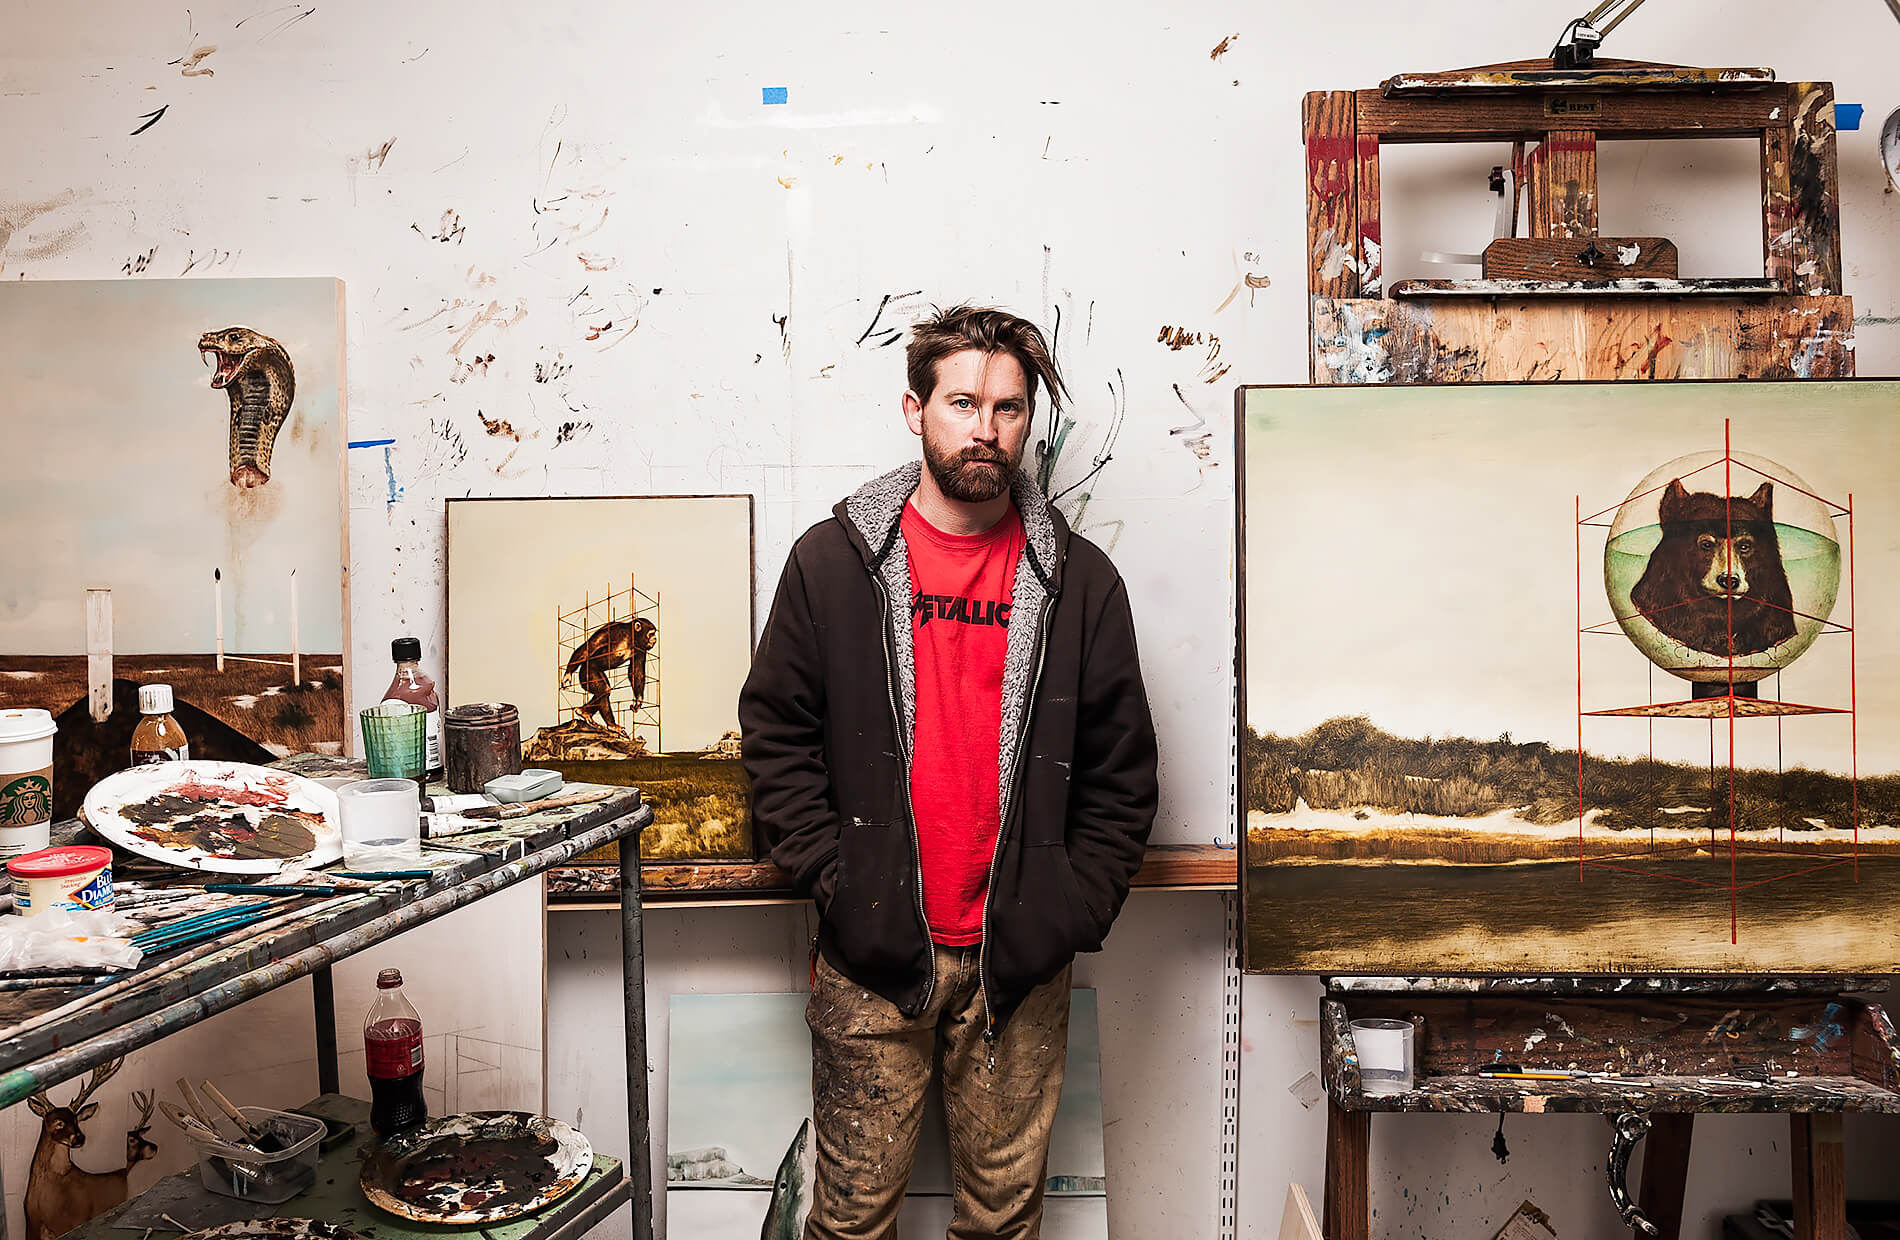 Artist Kevin Taylor surrounded by paintings in his San Francisco studio.